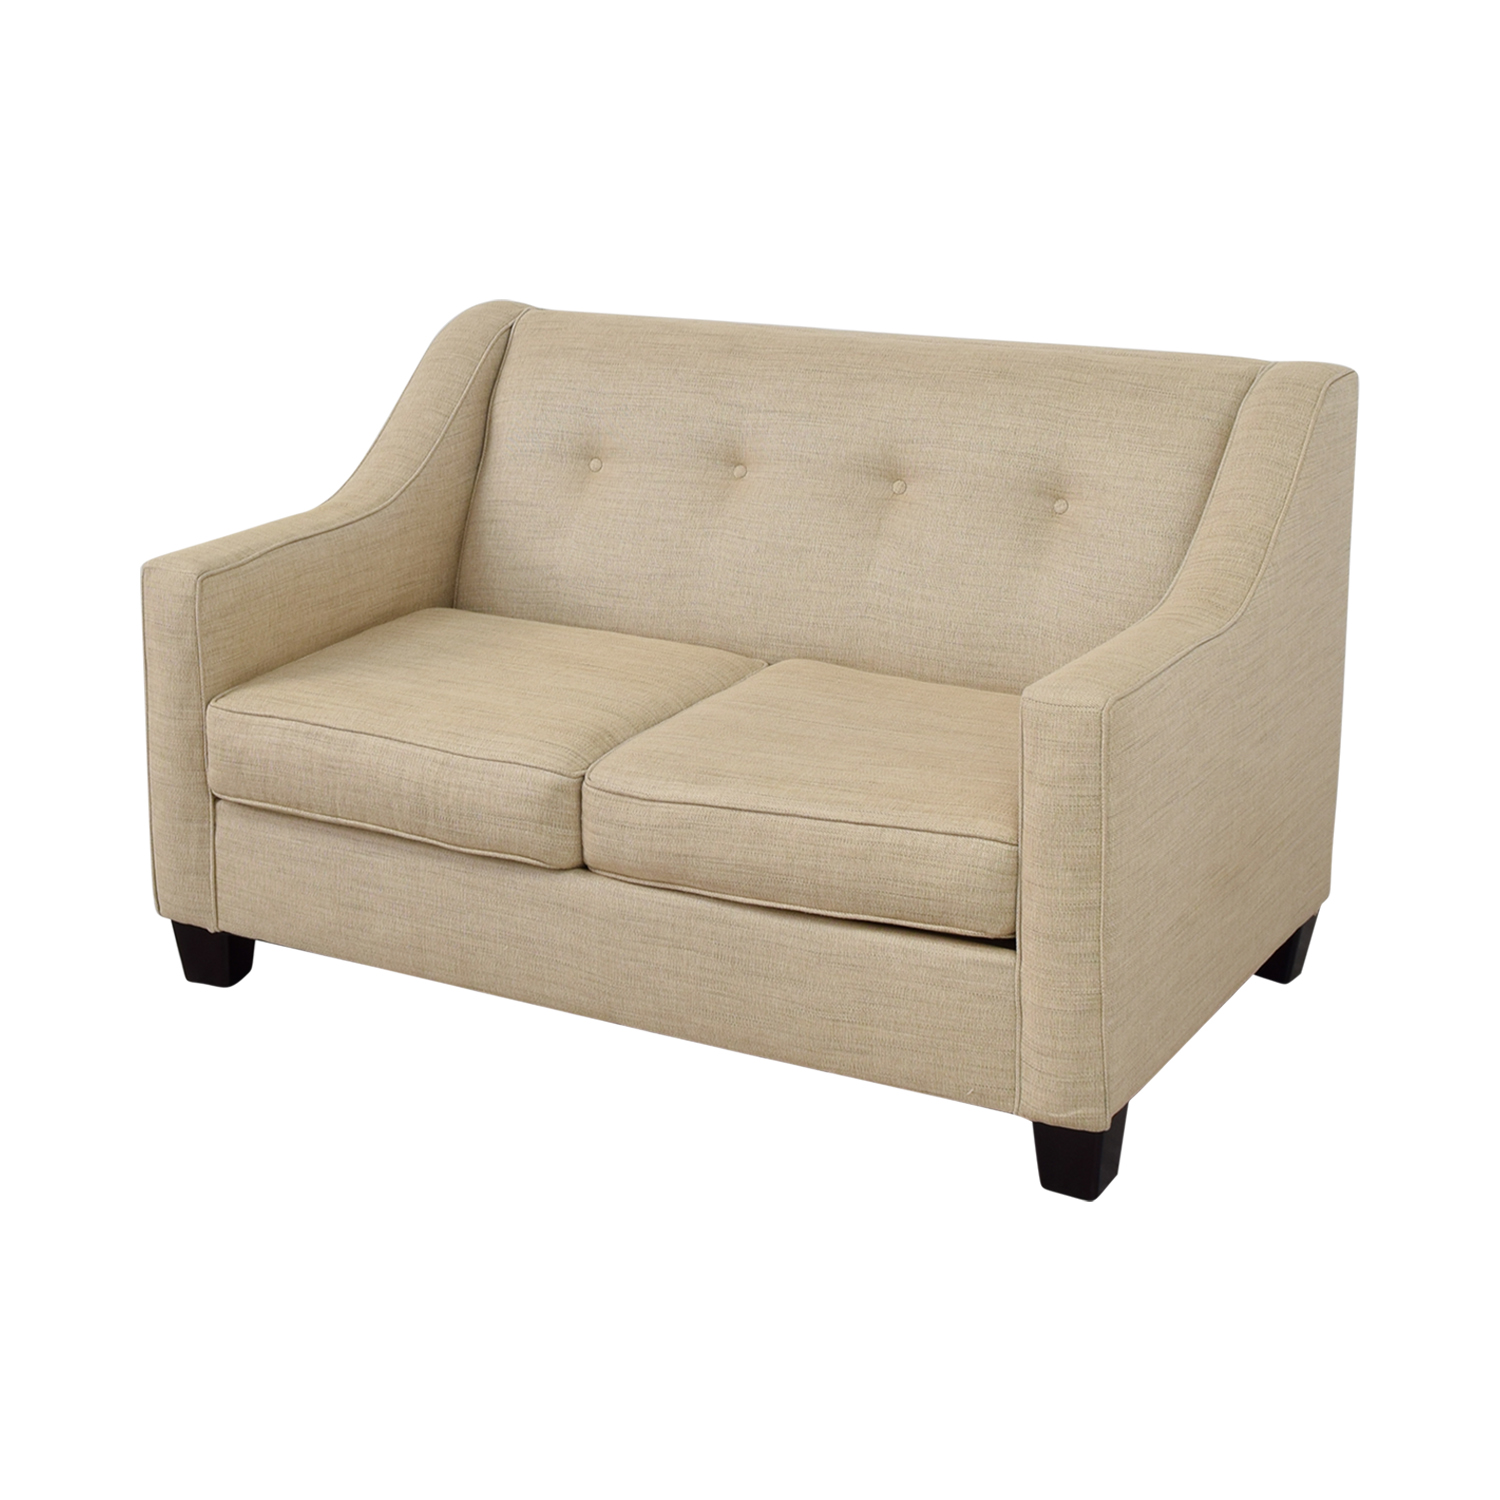 57 Off Bob S Furniture Bob S Furniture Caleb Tan Tufted Back Loveseat Sofas